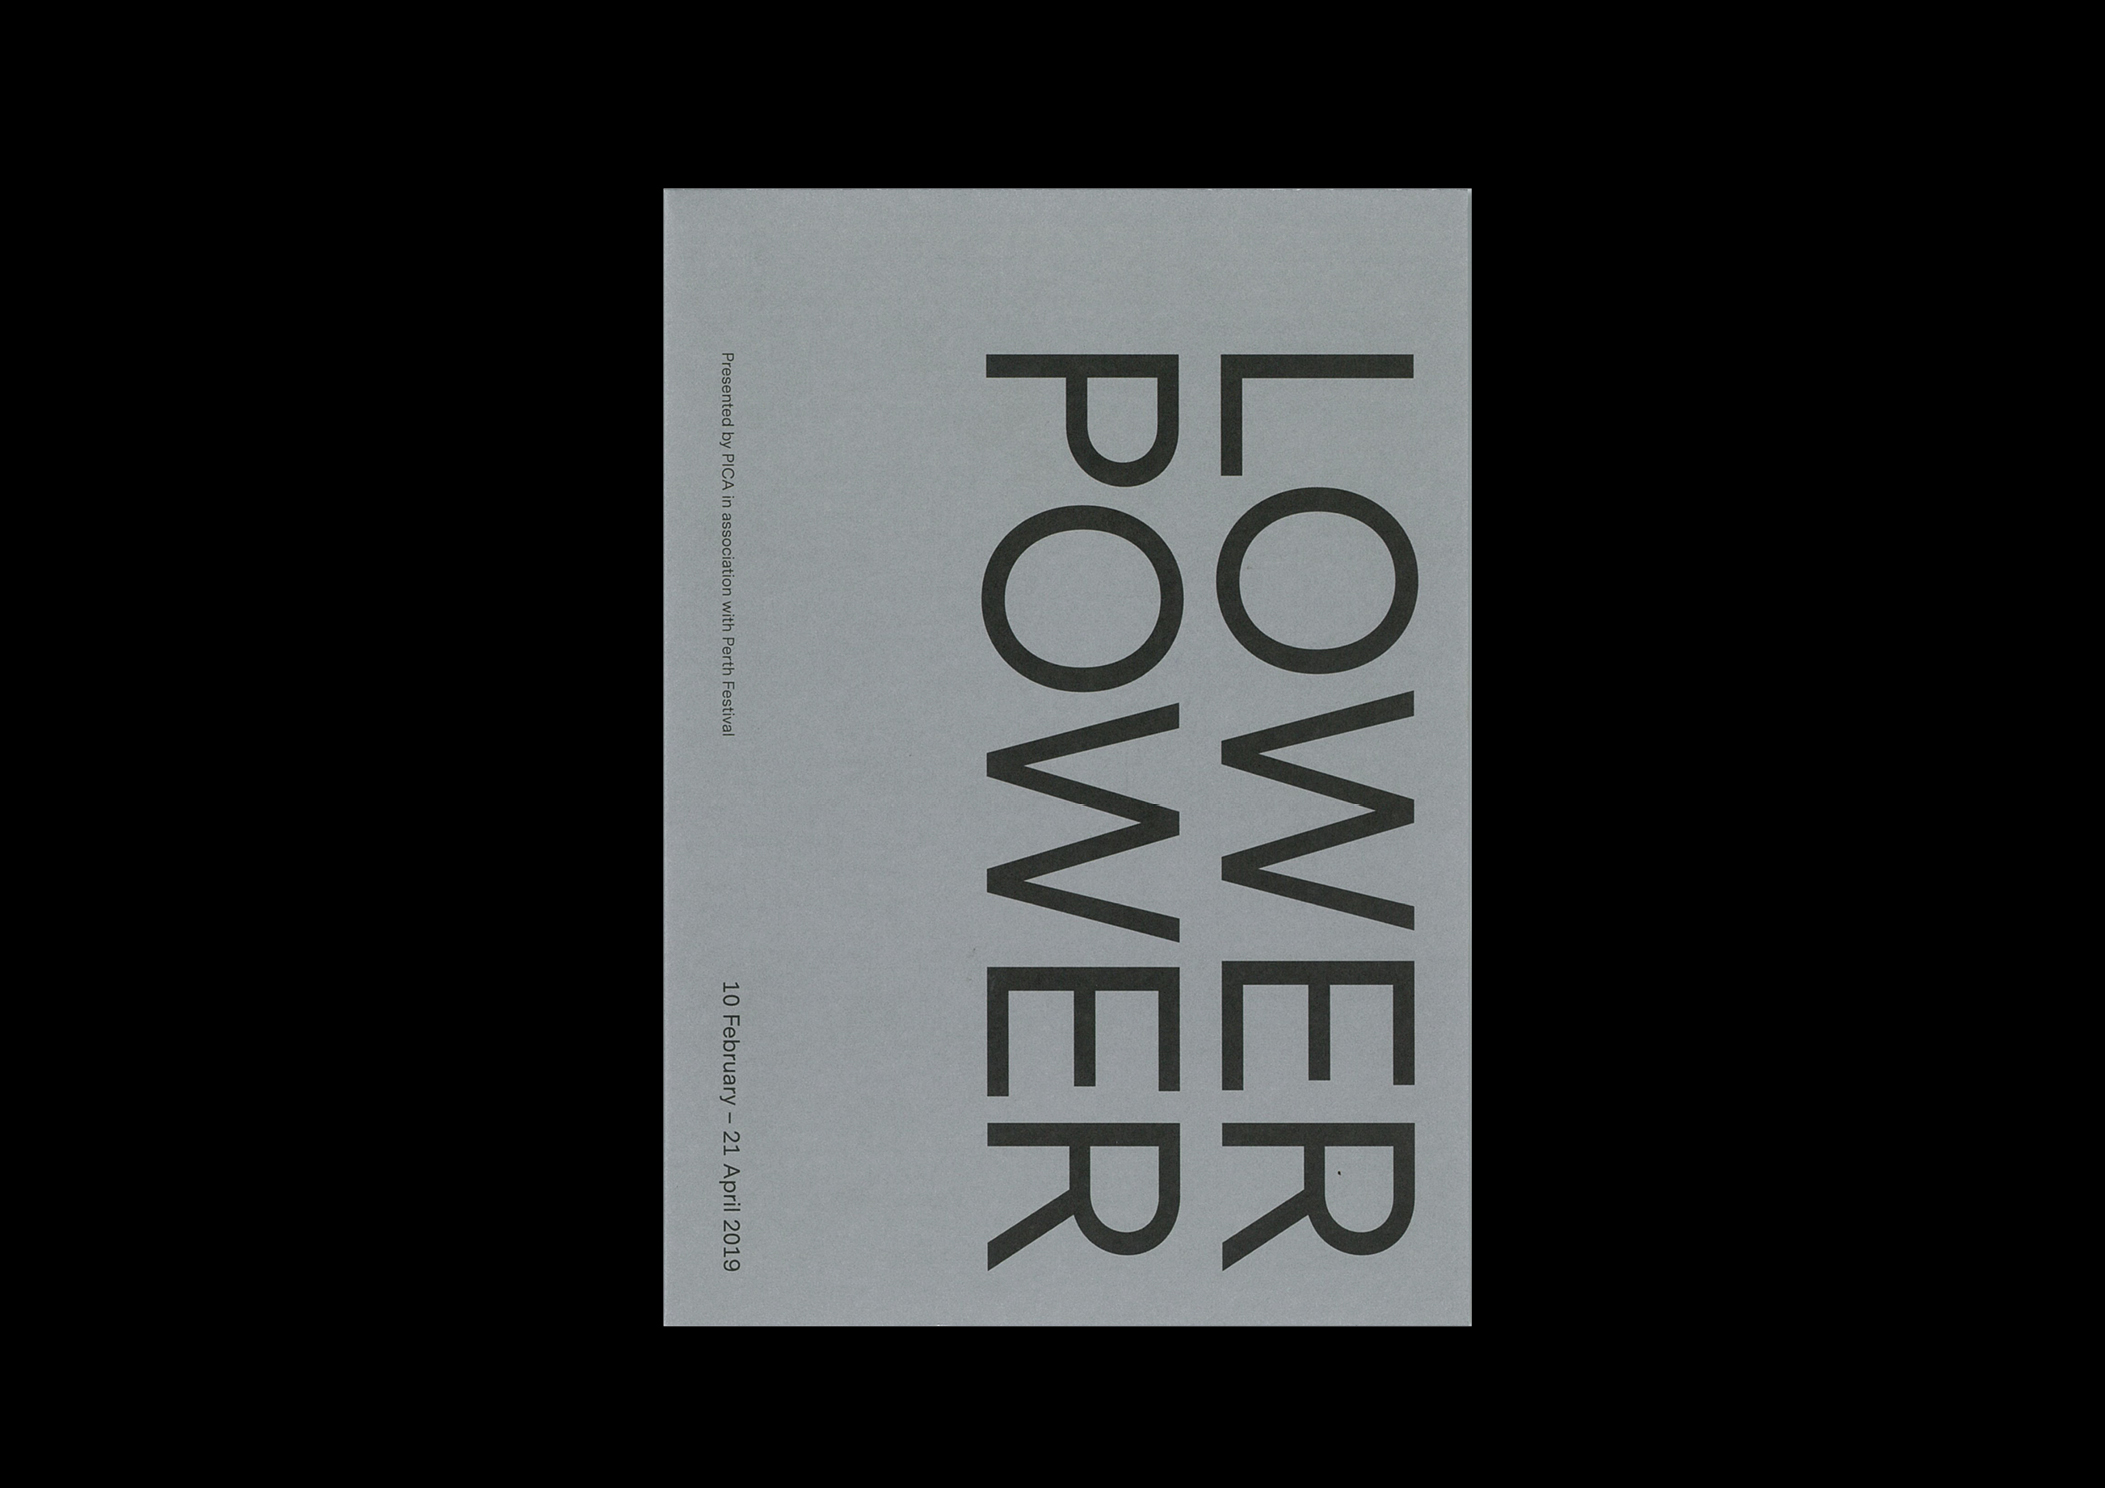 2019 Design and Direction For Melbourne artist Marco Fusinato's project at PICA 'Lower Power'